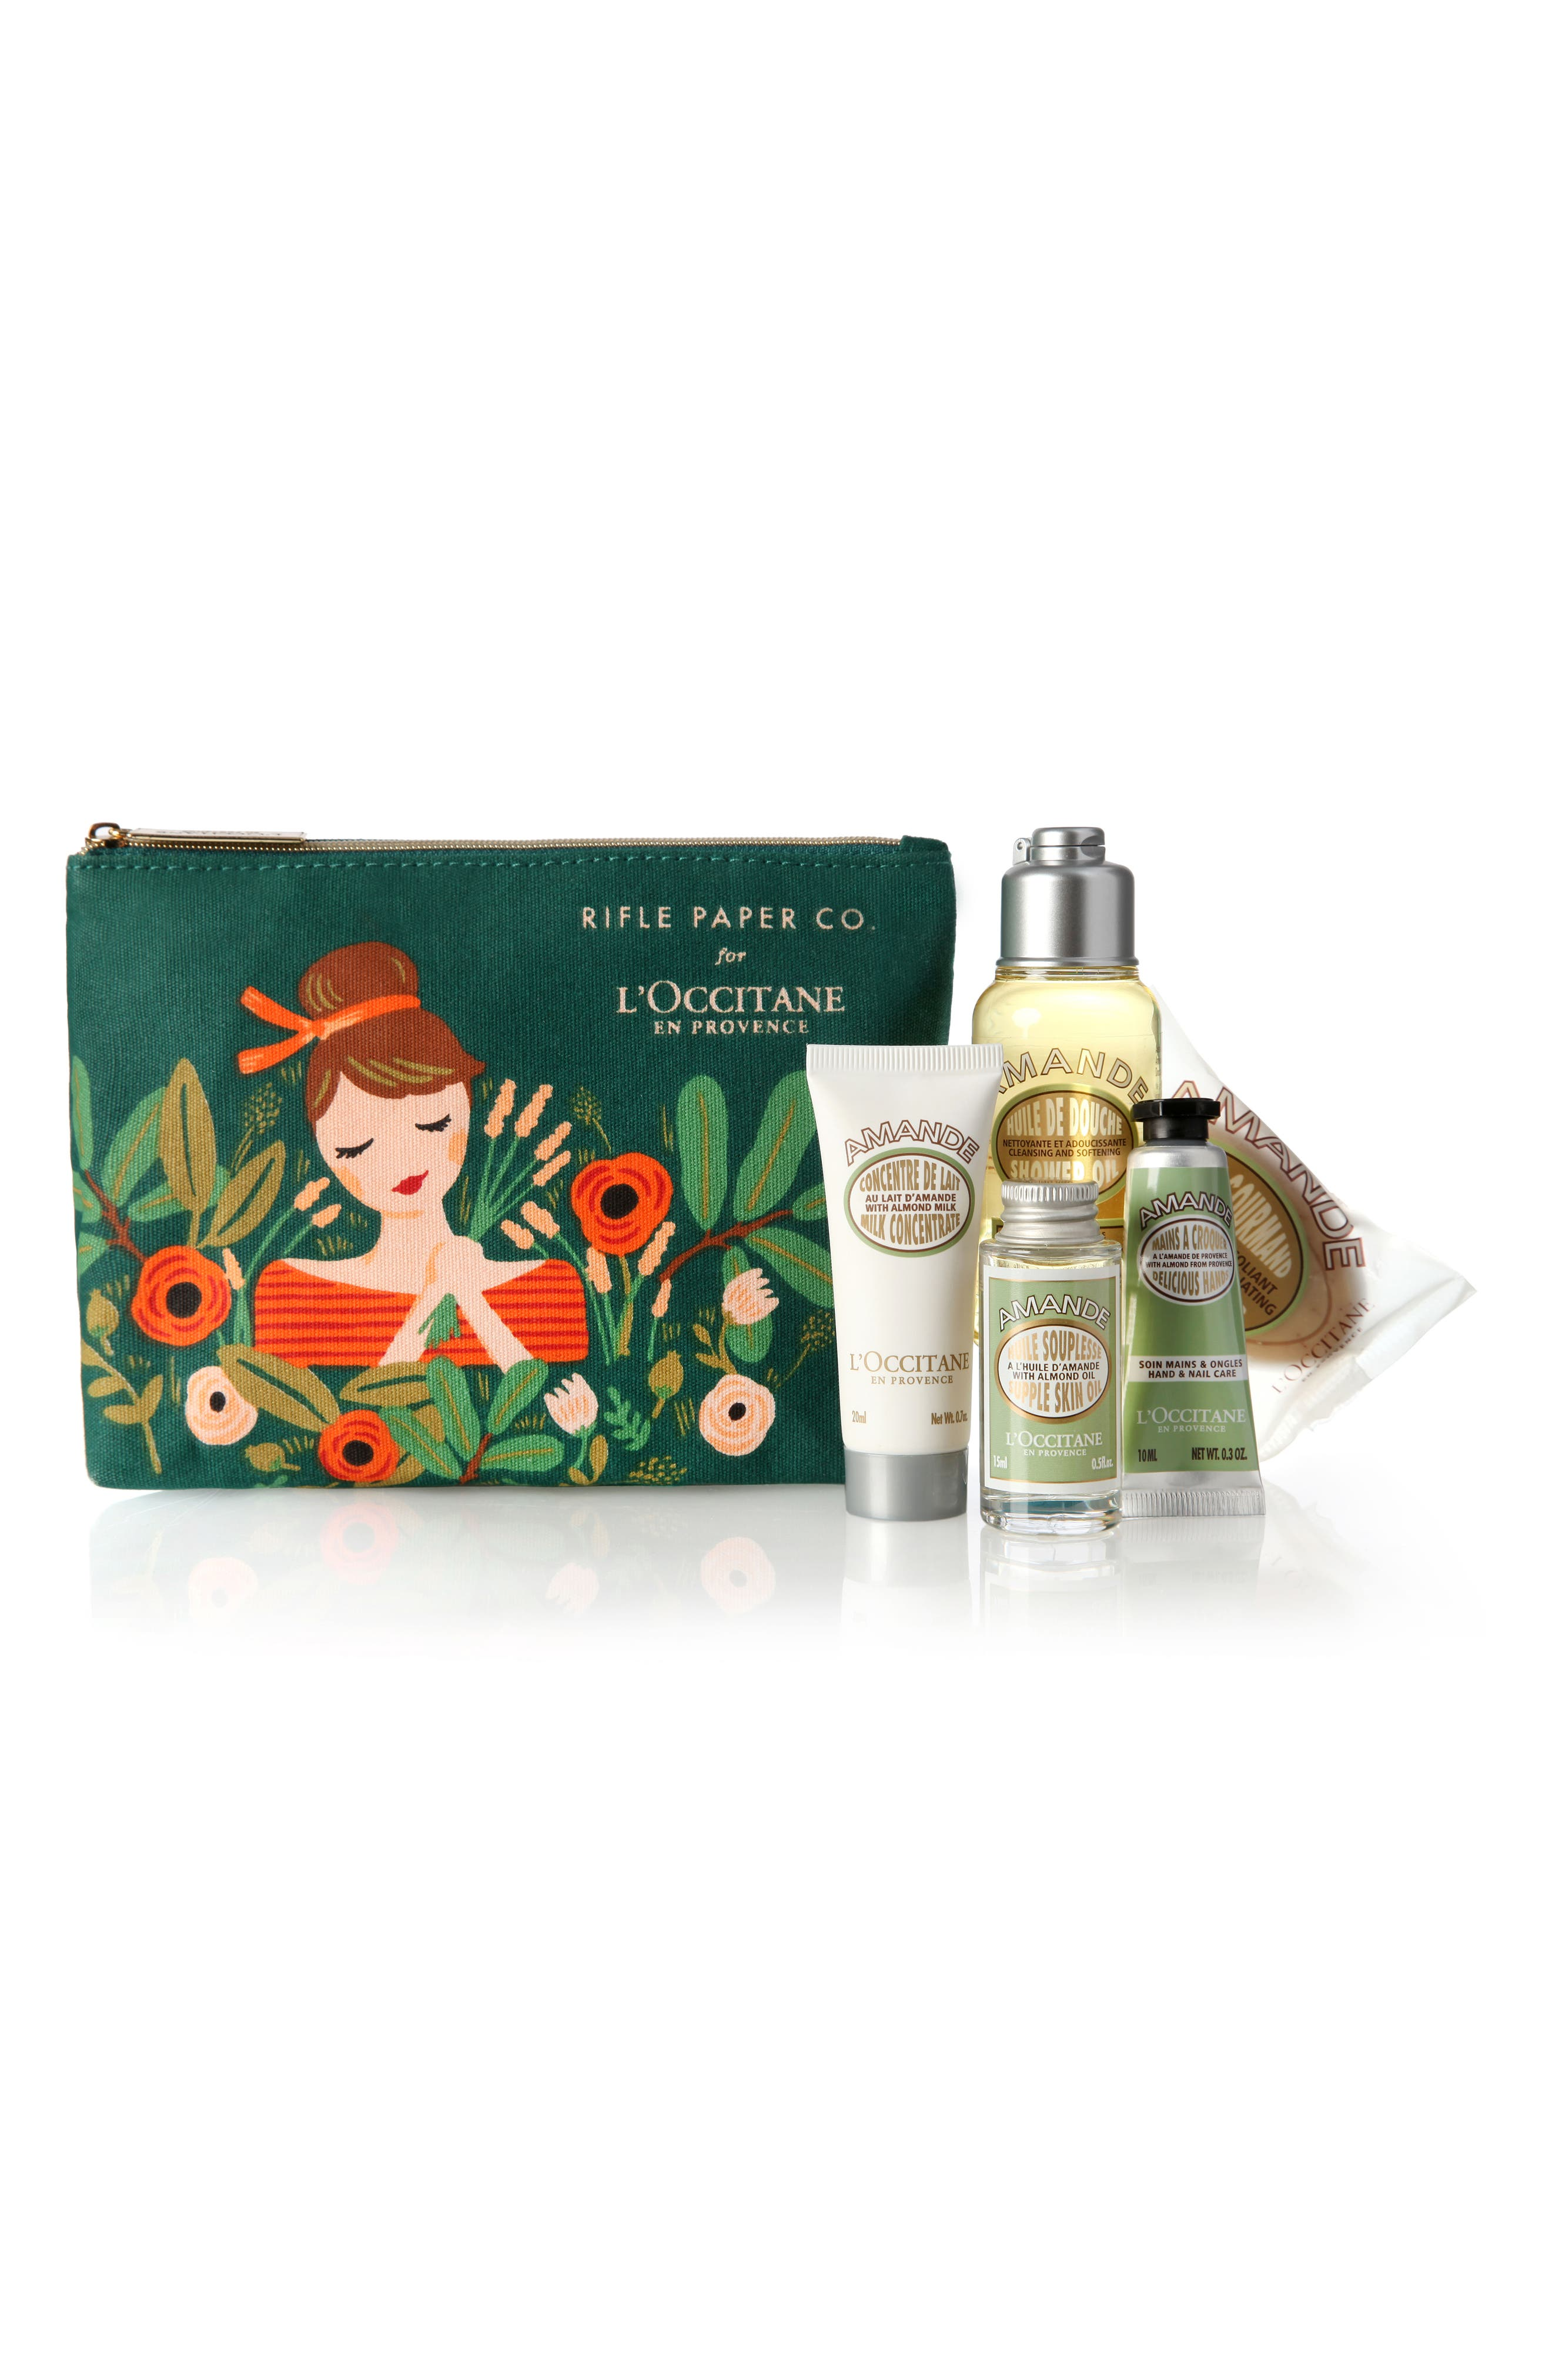 L'Occitane Rifle Paper Co. Almond Set ($38 Value)